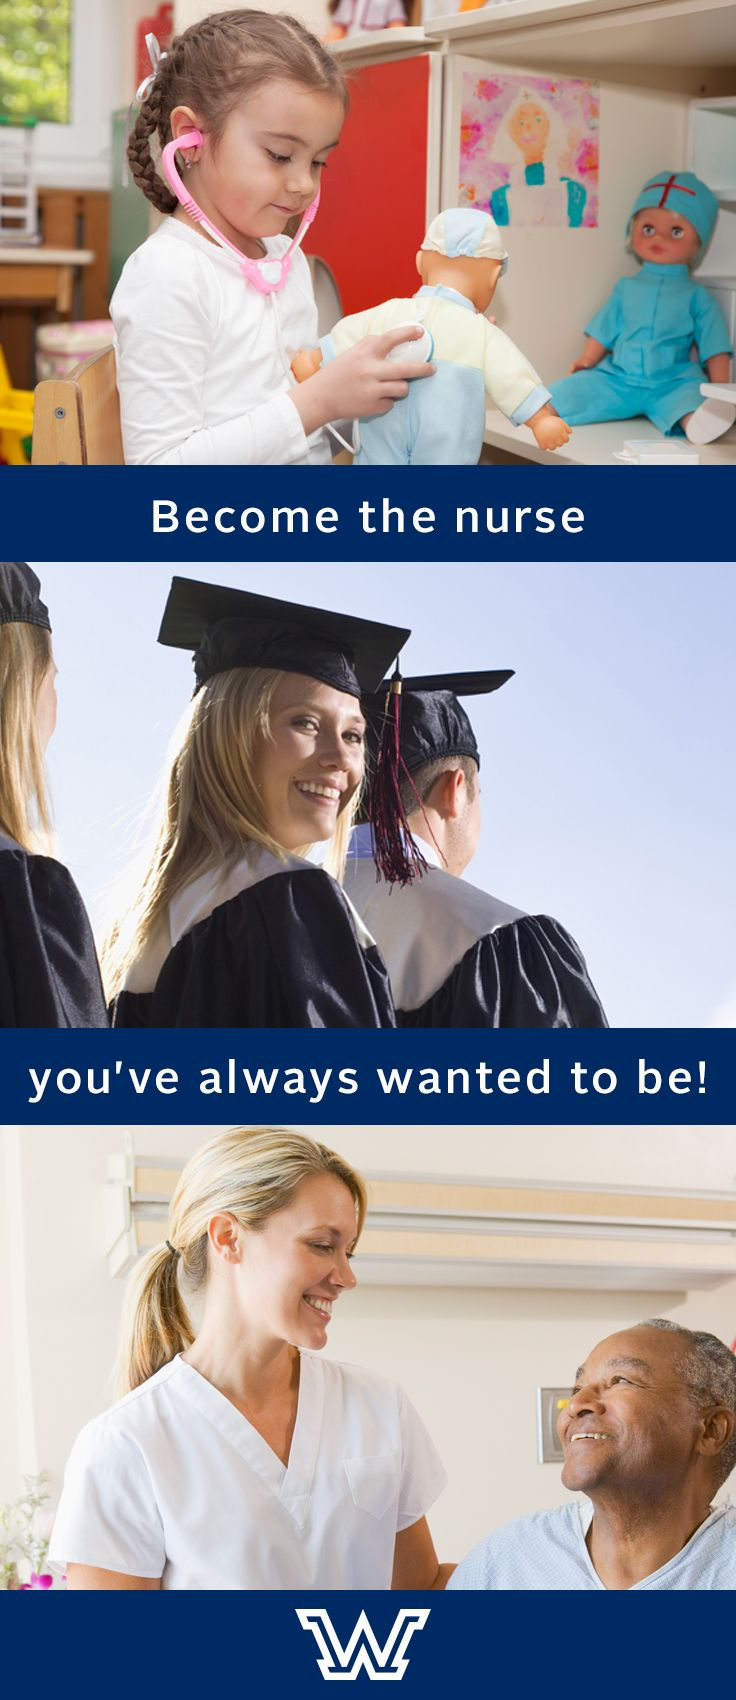 Nurses: Earn your advanced nursing degree online! Our online nursing programs are designed for the busy, working nurse. Take classes at home and complete clinicals where you work. You can really do this!